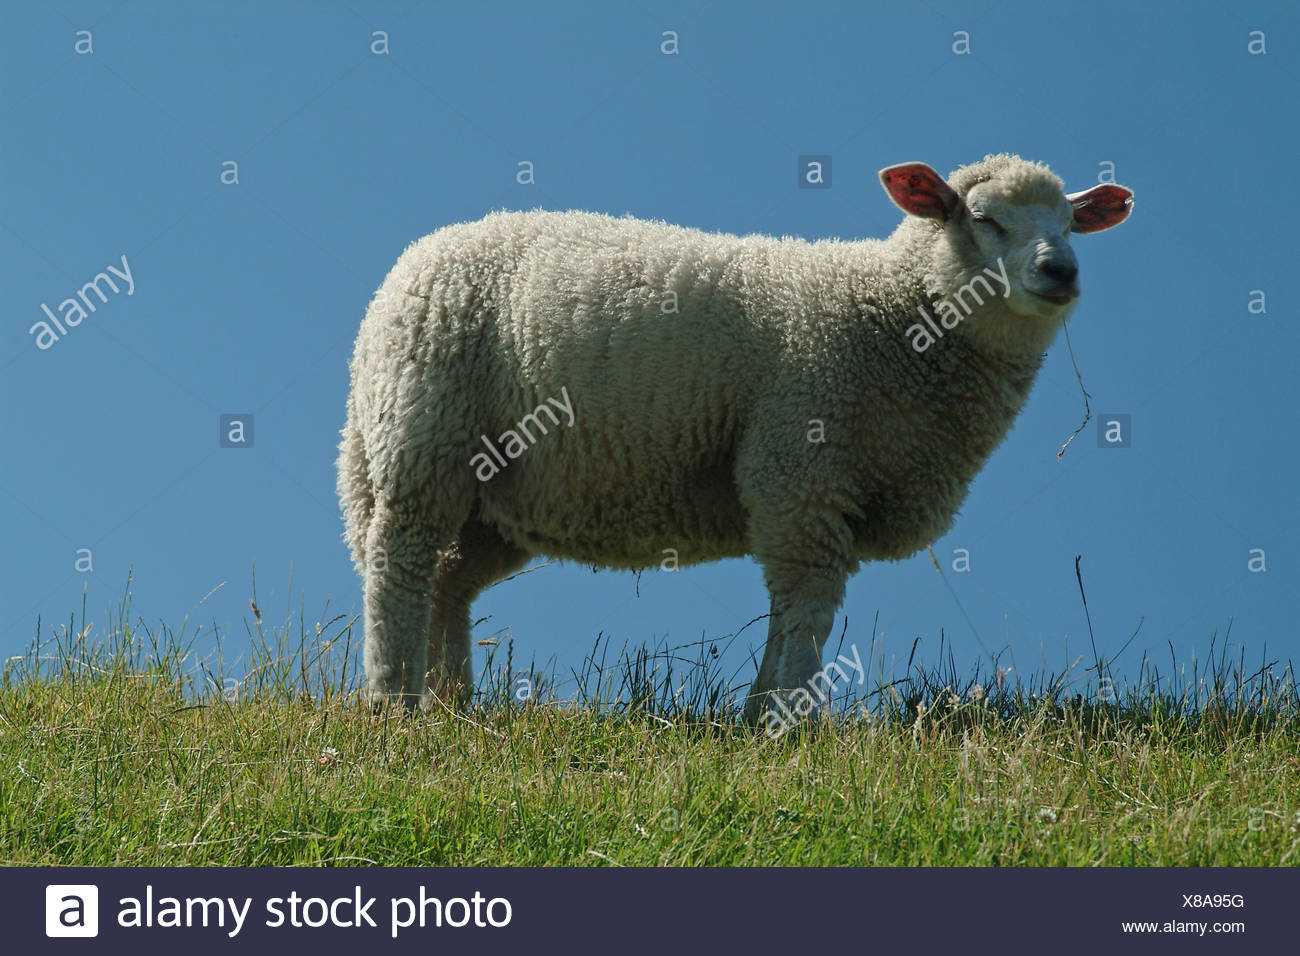 Death Of Farming Stock Photos & Death Of Farming Stock Images - Alamy